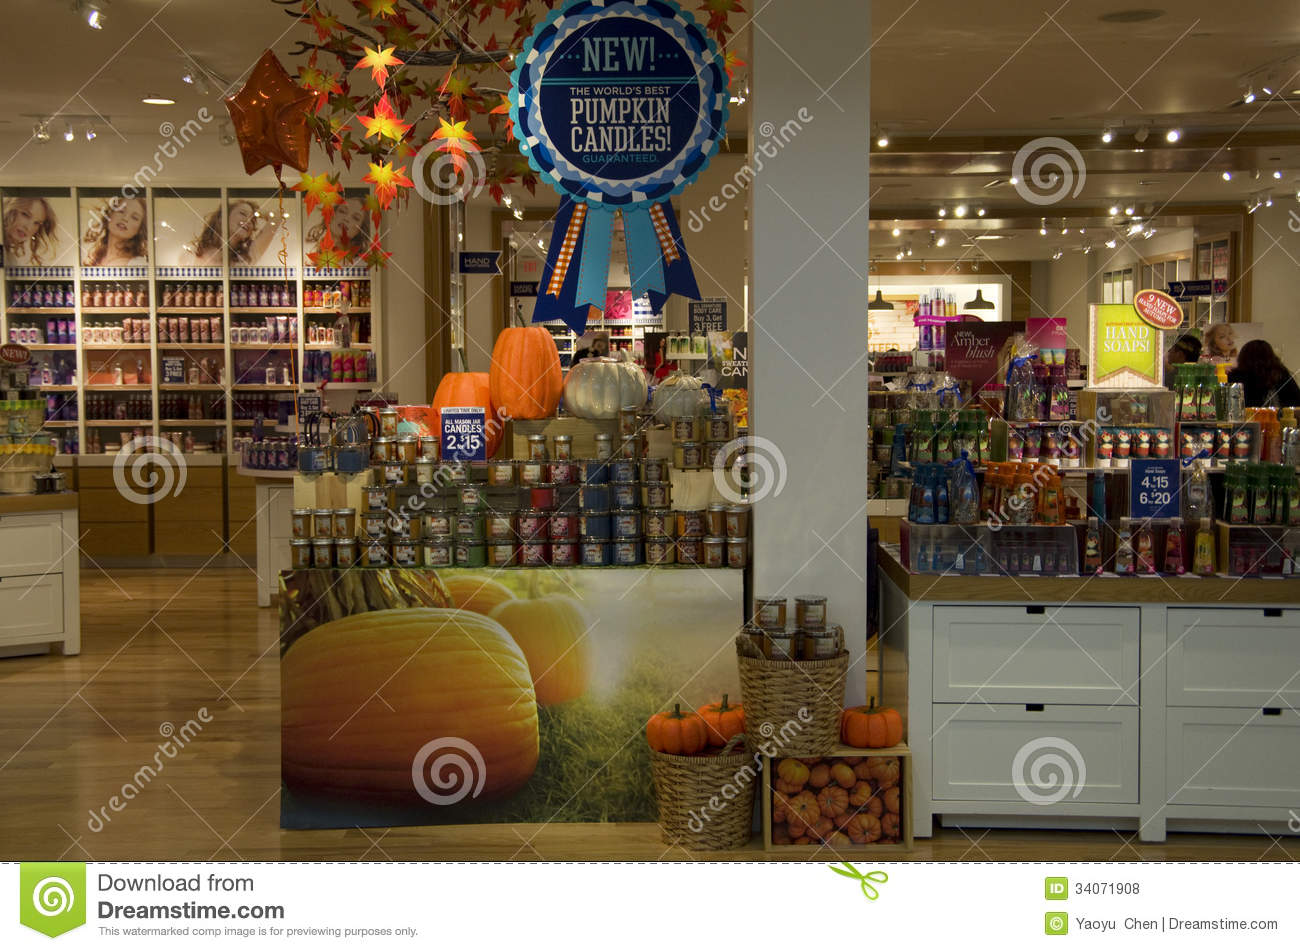 candles halloween decorations store stock photo 34071908 - megapixl